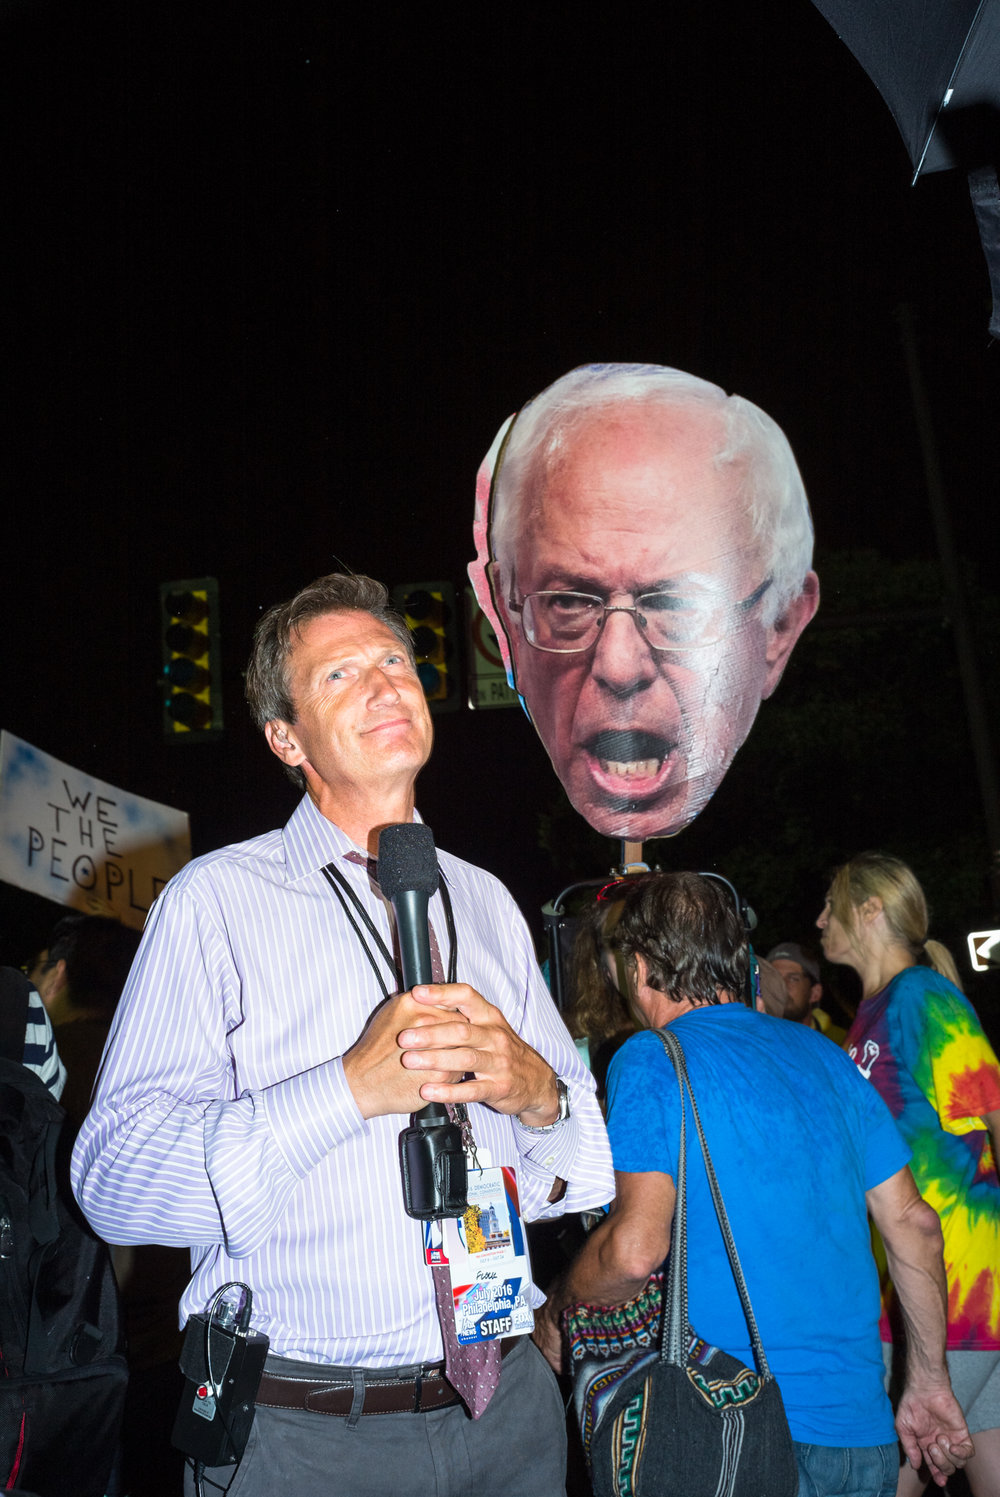 nick dinatale_democratic national convention dnc_2016_philadelphia_leica-24.jpg